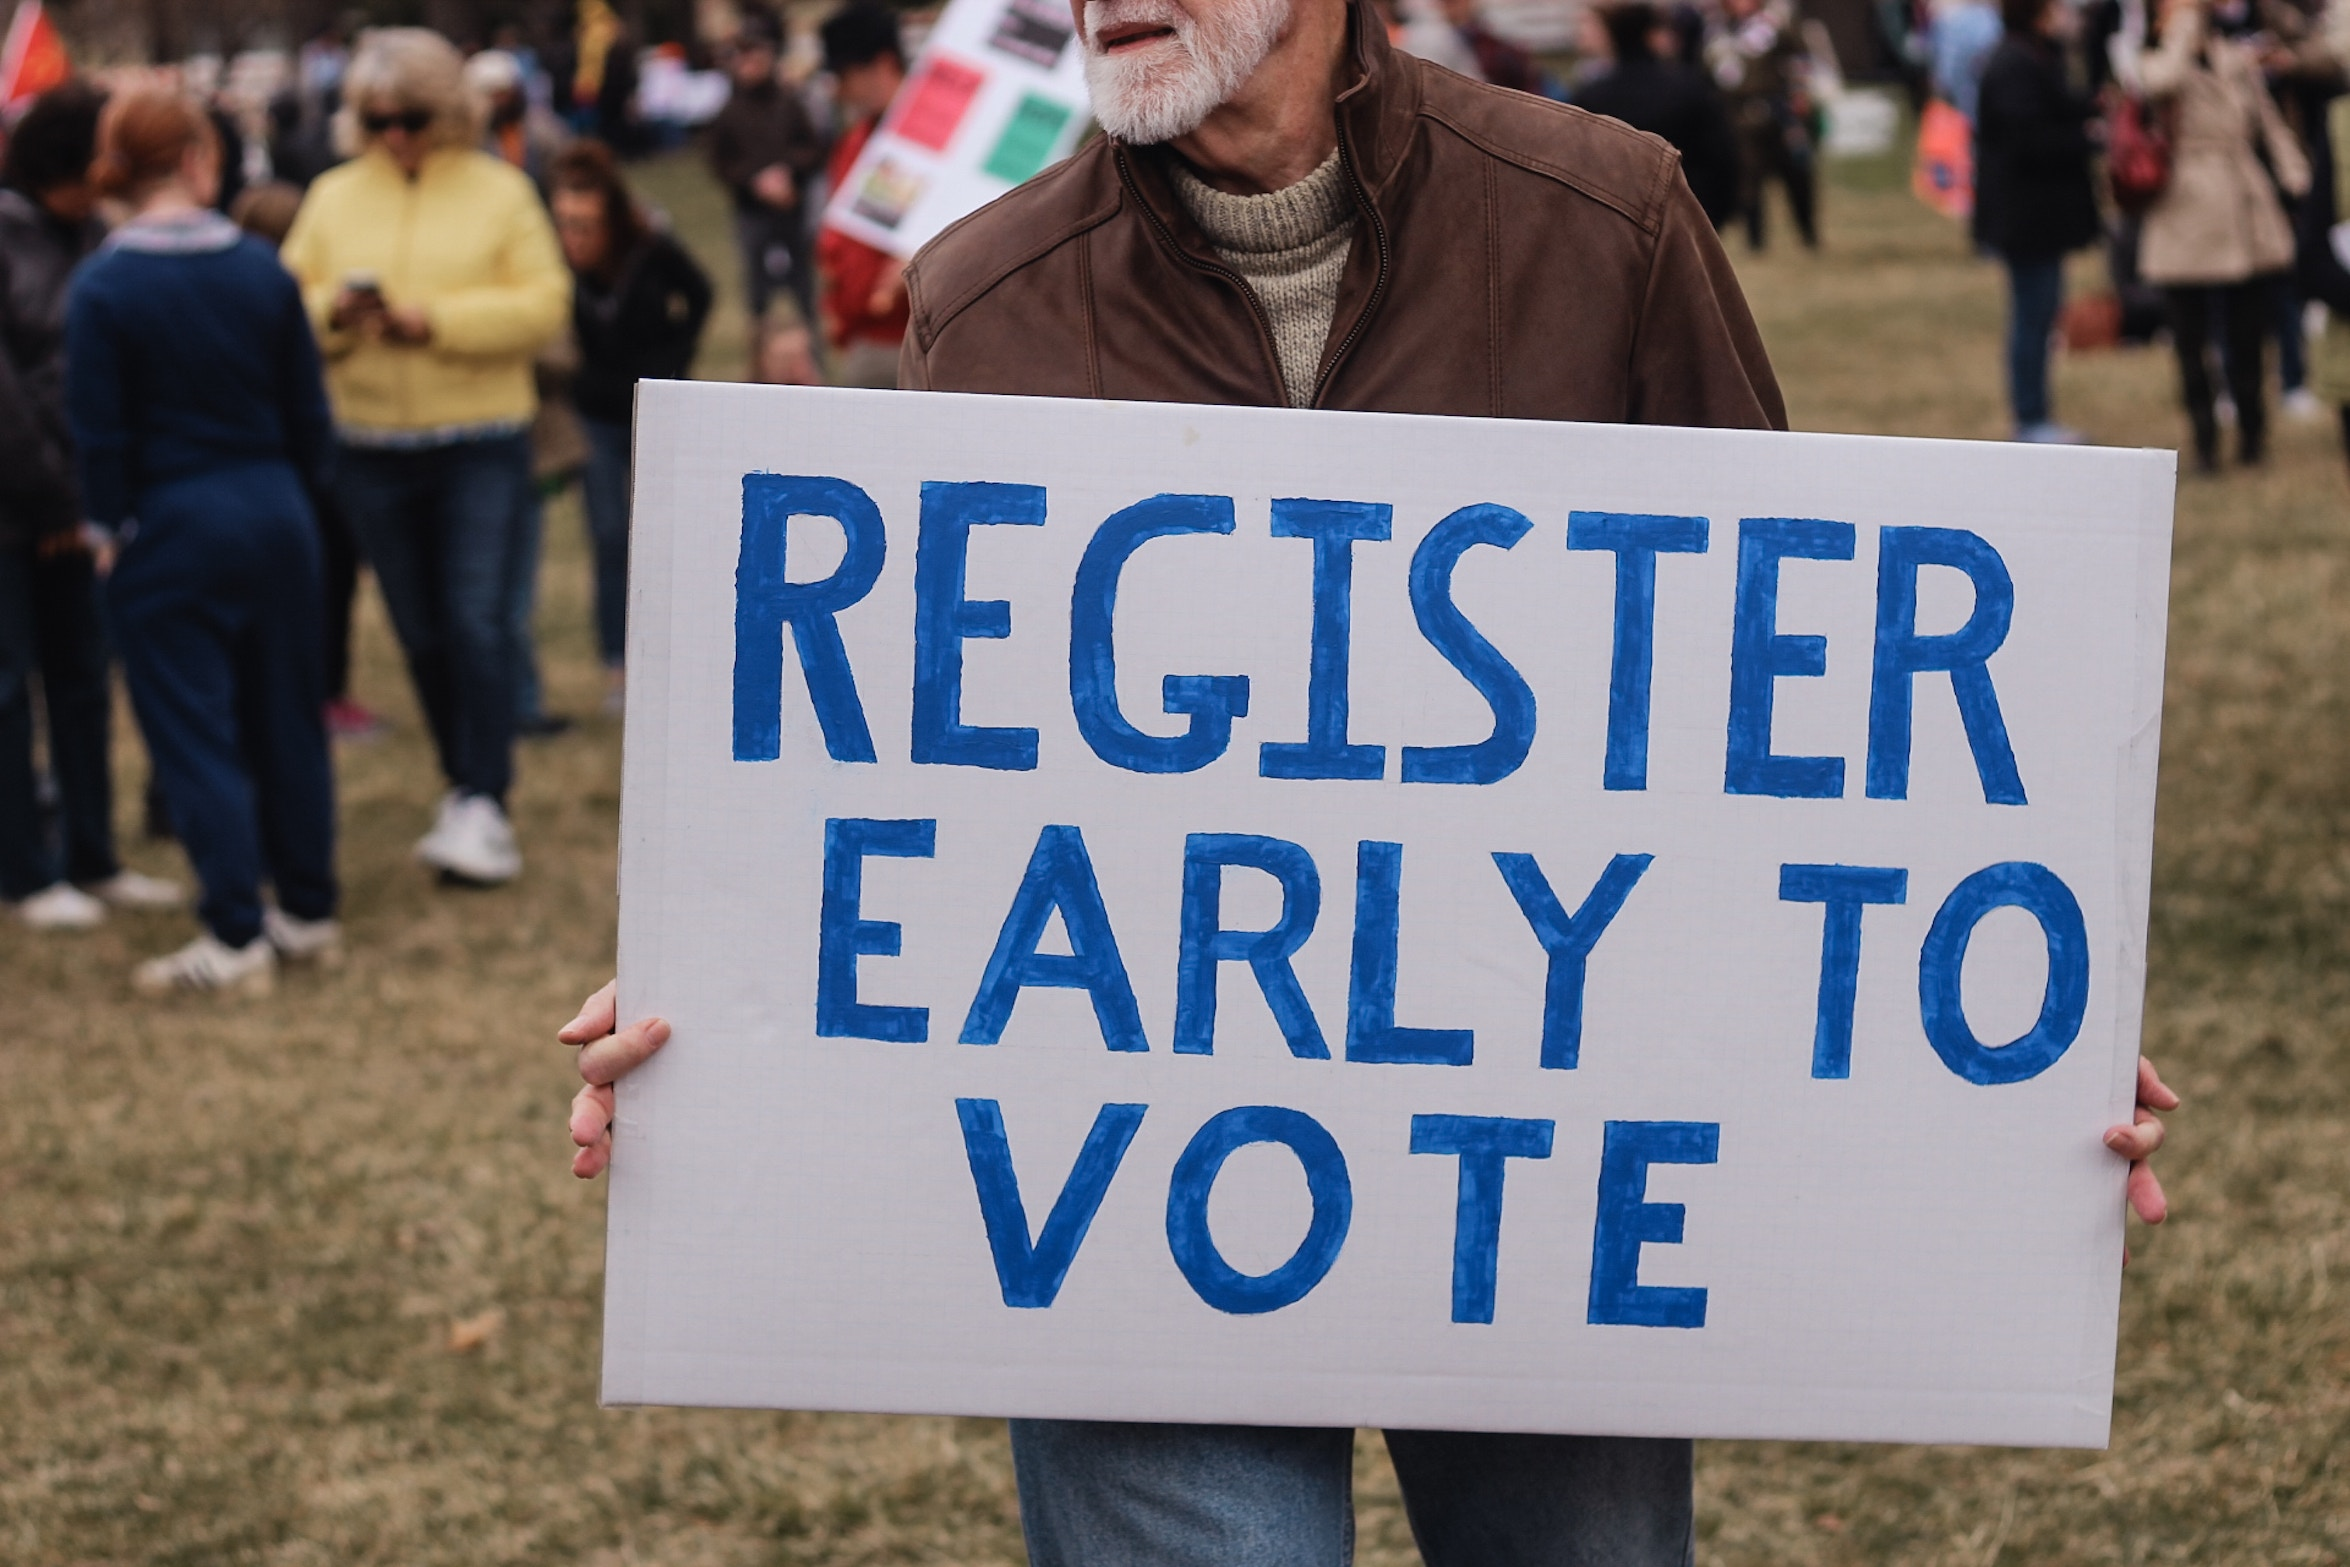 Voting from Abroad and the Challenge of Staying Engaged